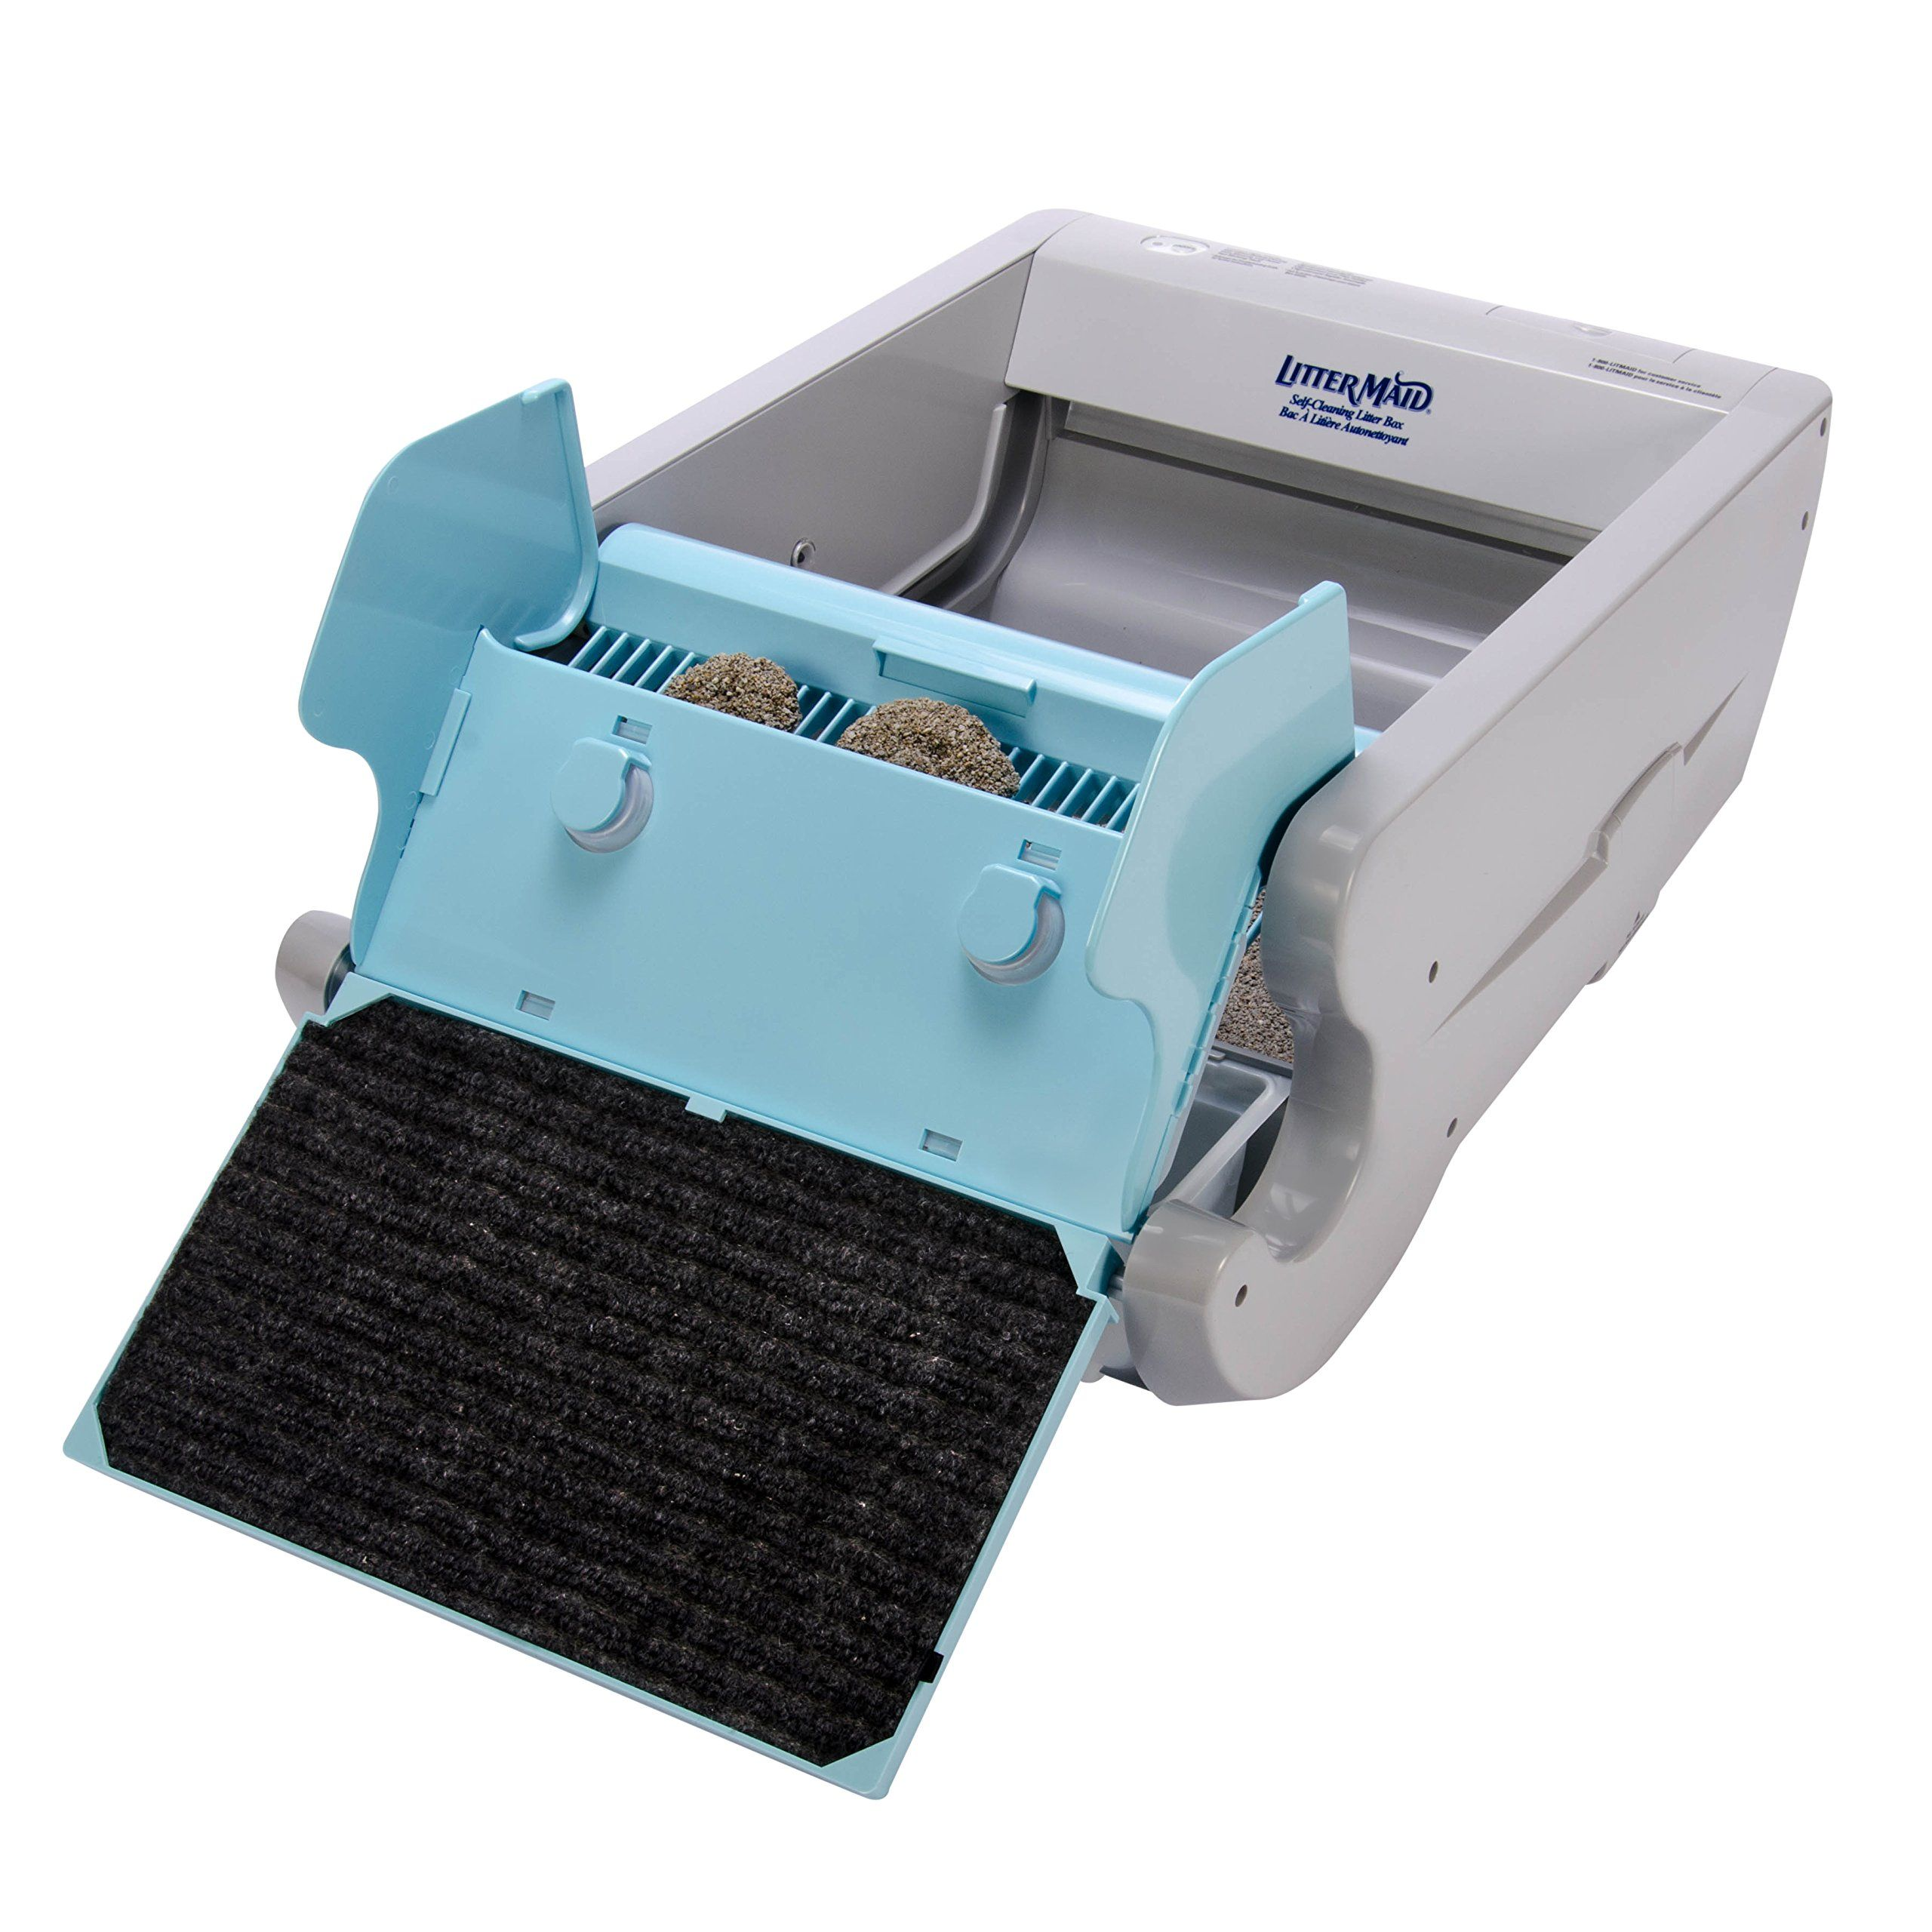 Littermaid Lm680c Automatic Selfcleaning Classic Litter Box Lm680c More Info Could Be F Self Cleaning Litter Box Cleaning Kitty Litter Automatic Cat Litter